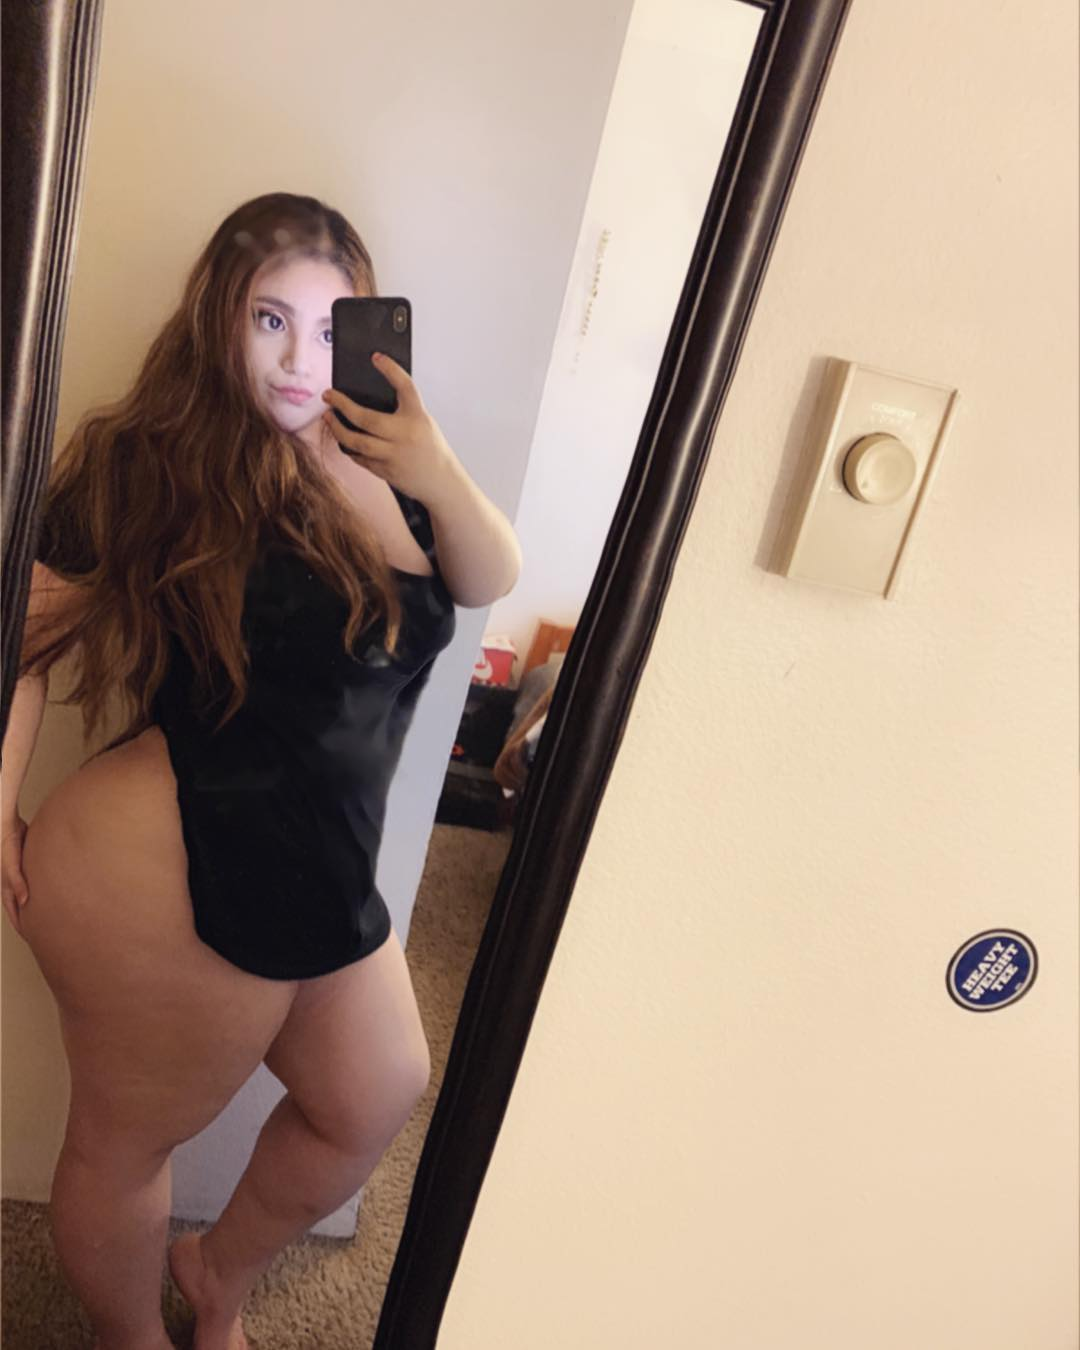 Anali Sanchez Nude Onlyfans Leaked!0096